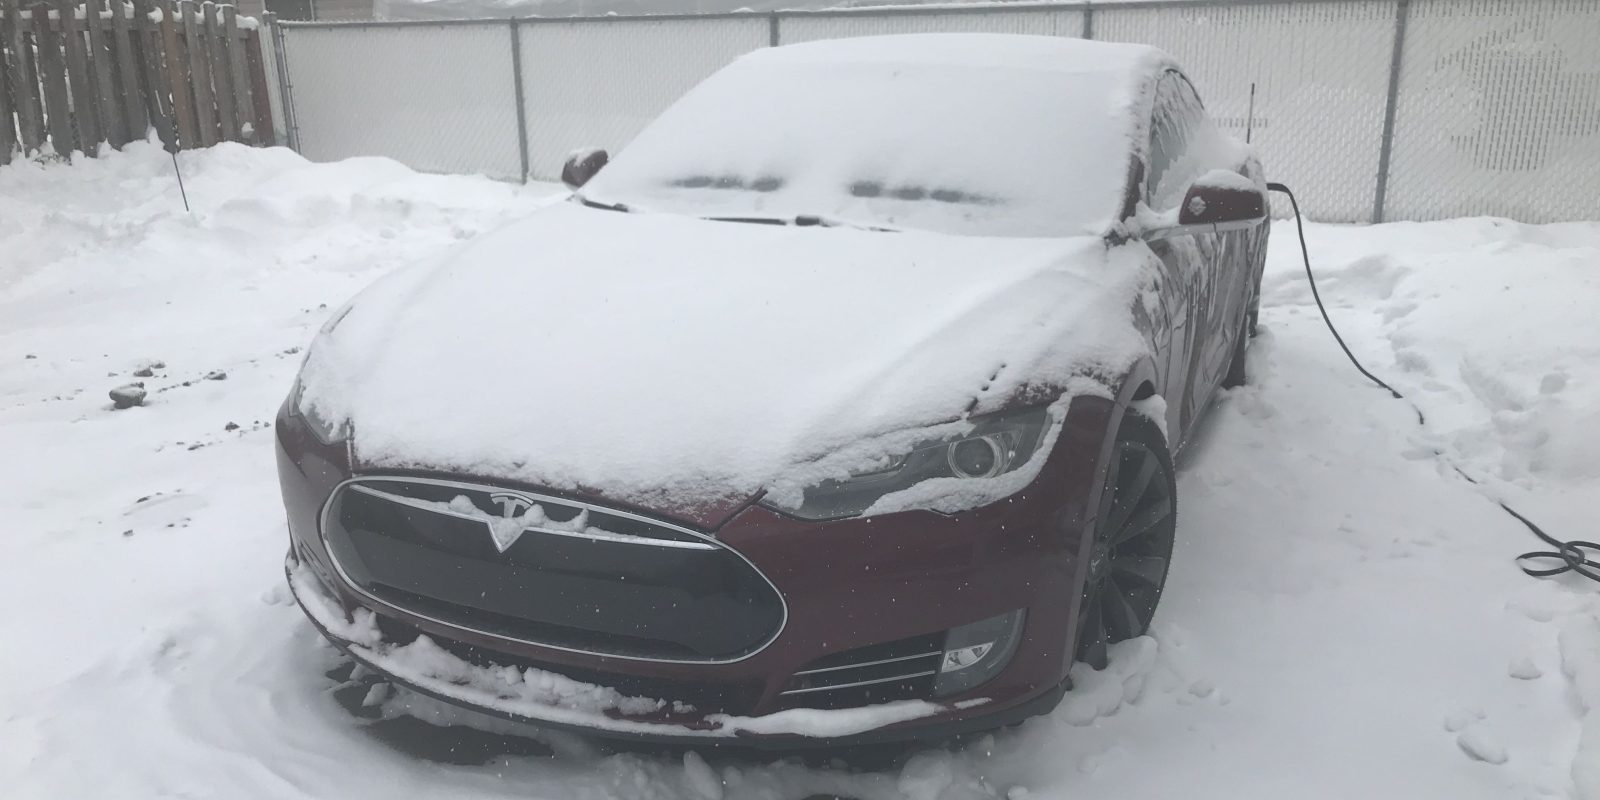 Electric car range is affected by extreme cold, but at least